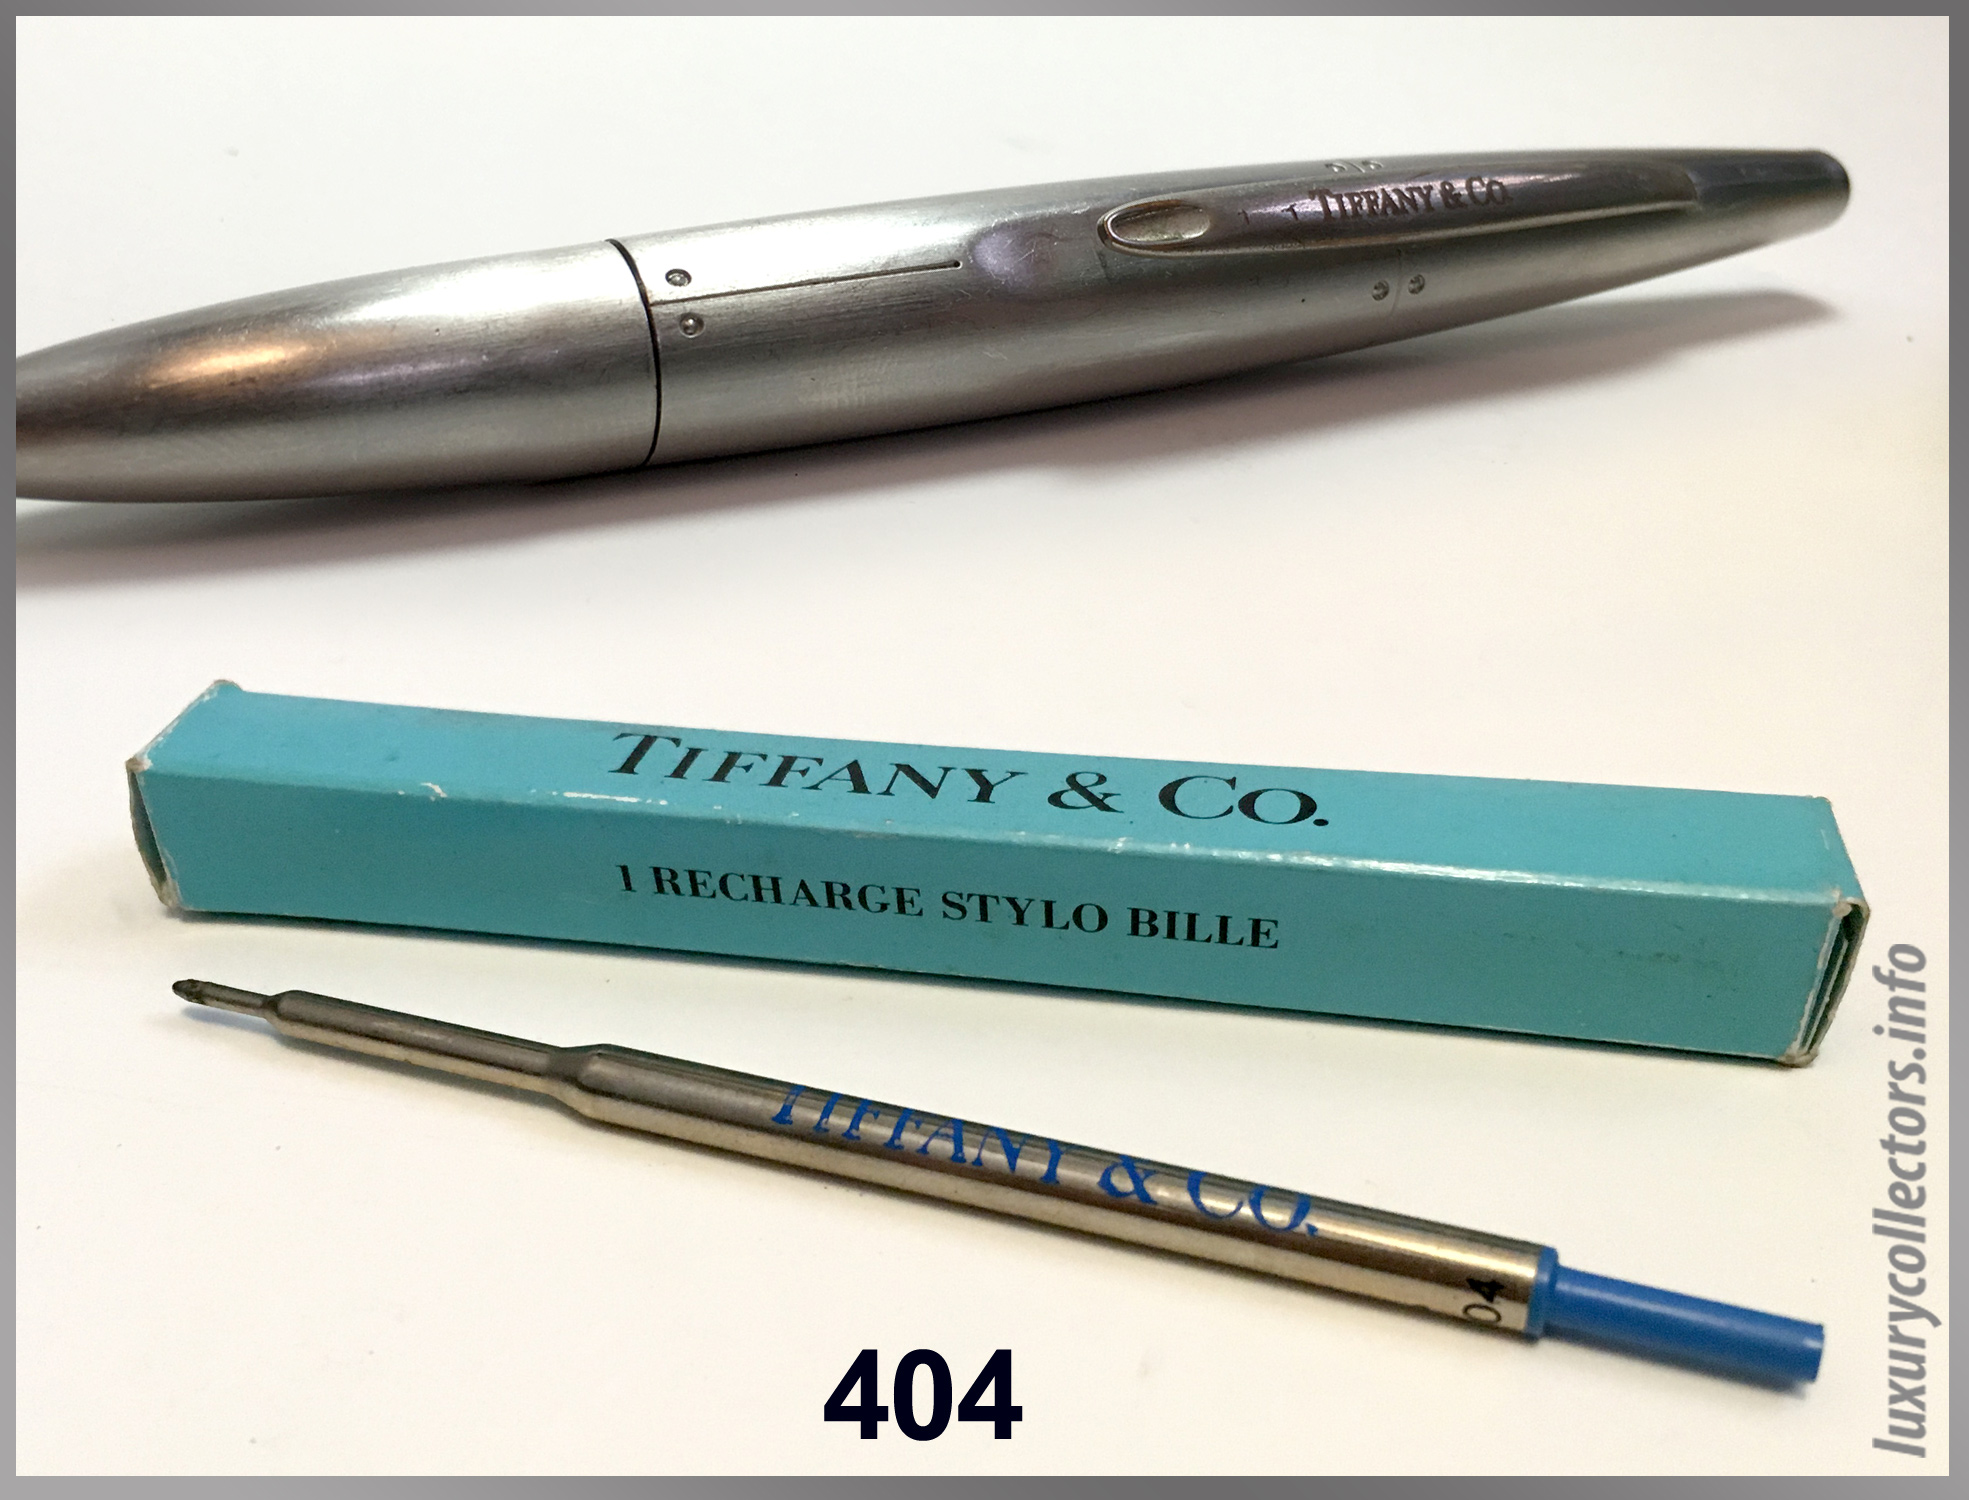 Recharge Stylo Bille 404 Streamerica Tiffany & and Co. Airfflow Ballpoint Pen Stainless Steel 1993 Collection Refill #404